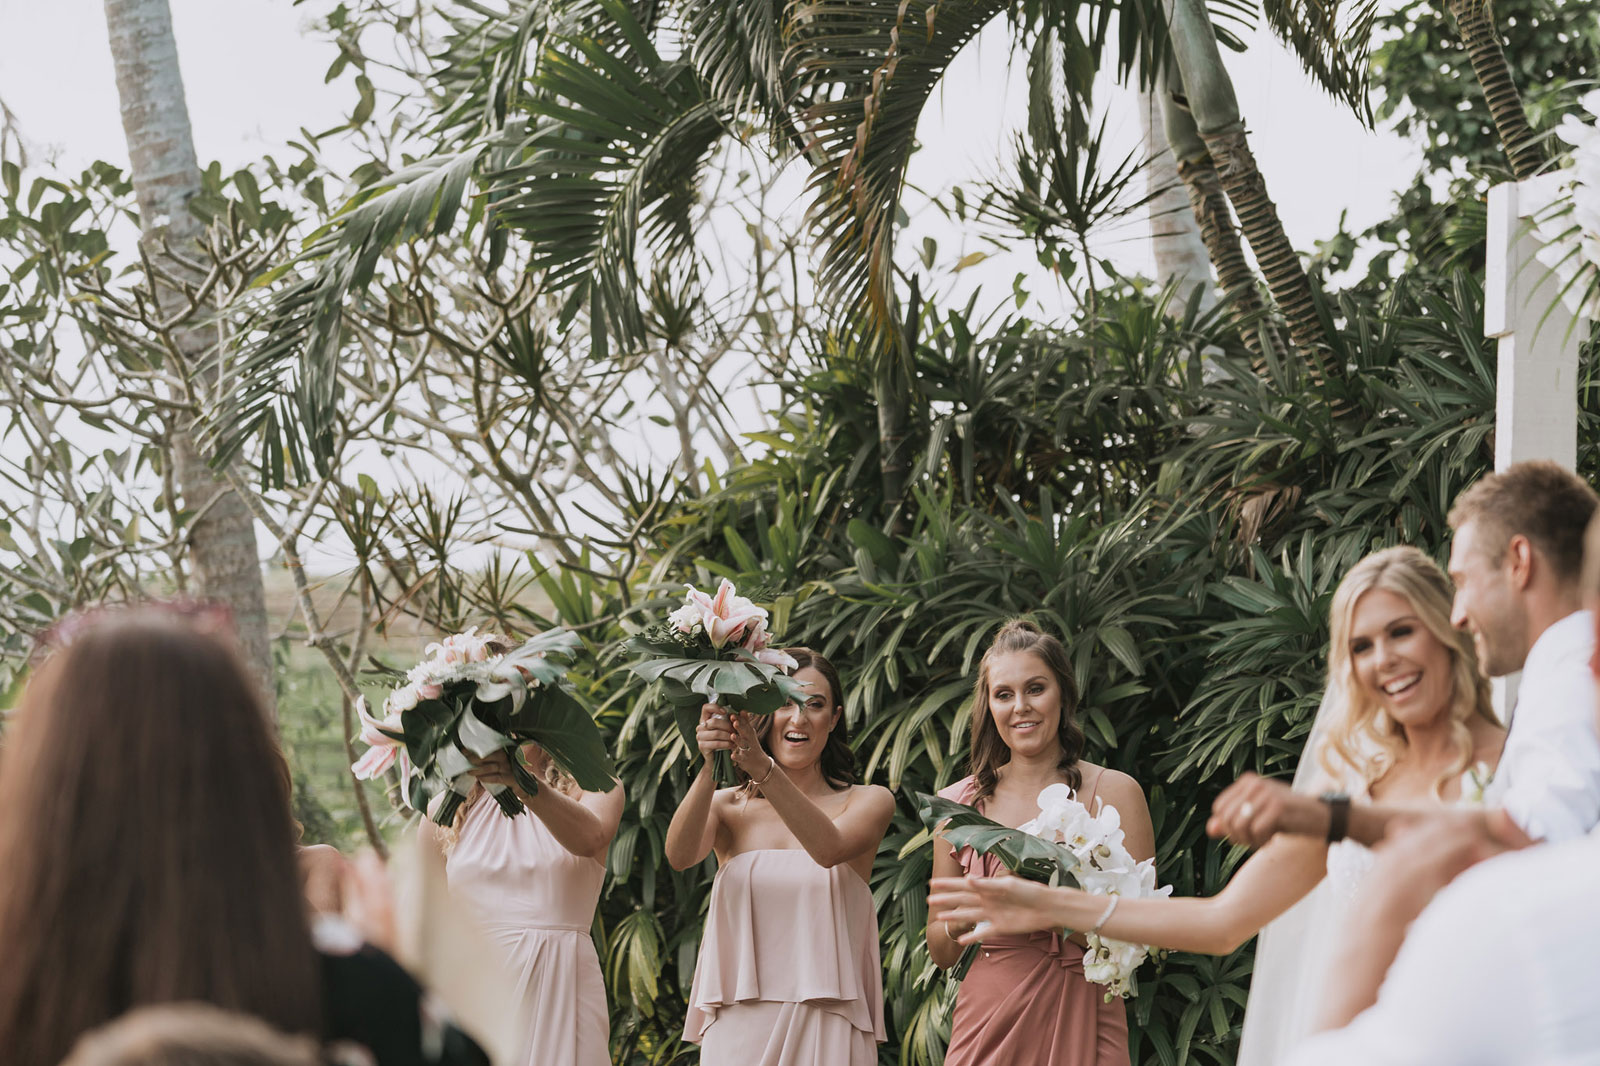 newfound-t-k-canggu-bali-ubud-wedding-photographer-474